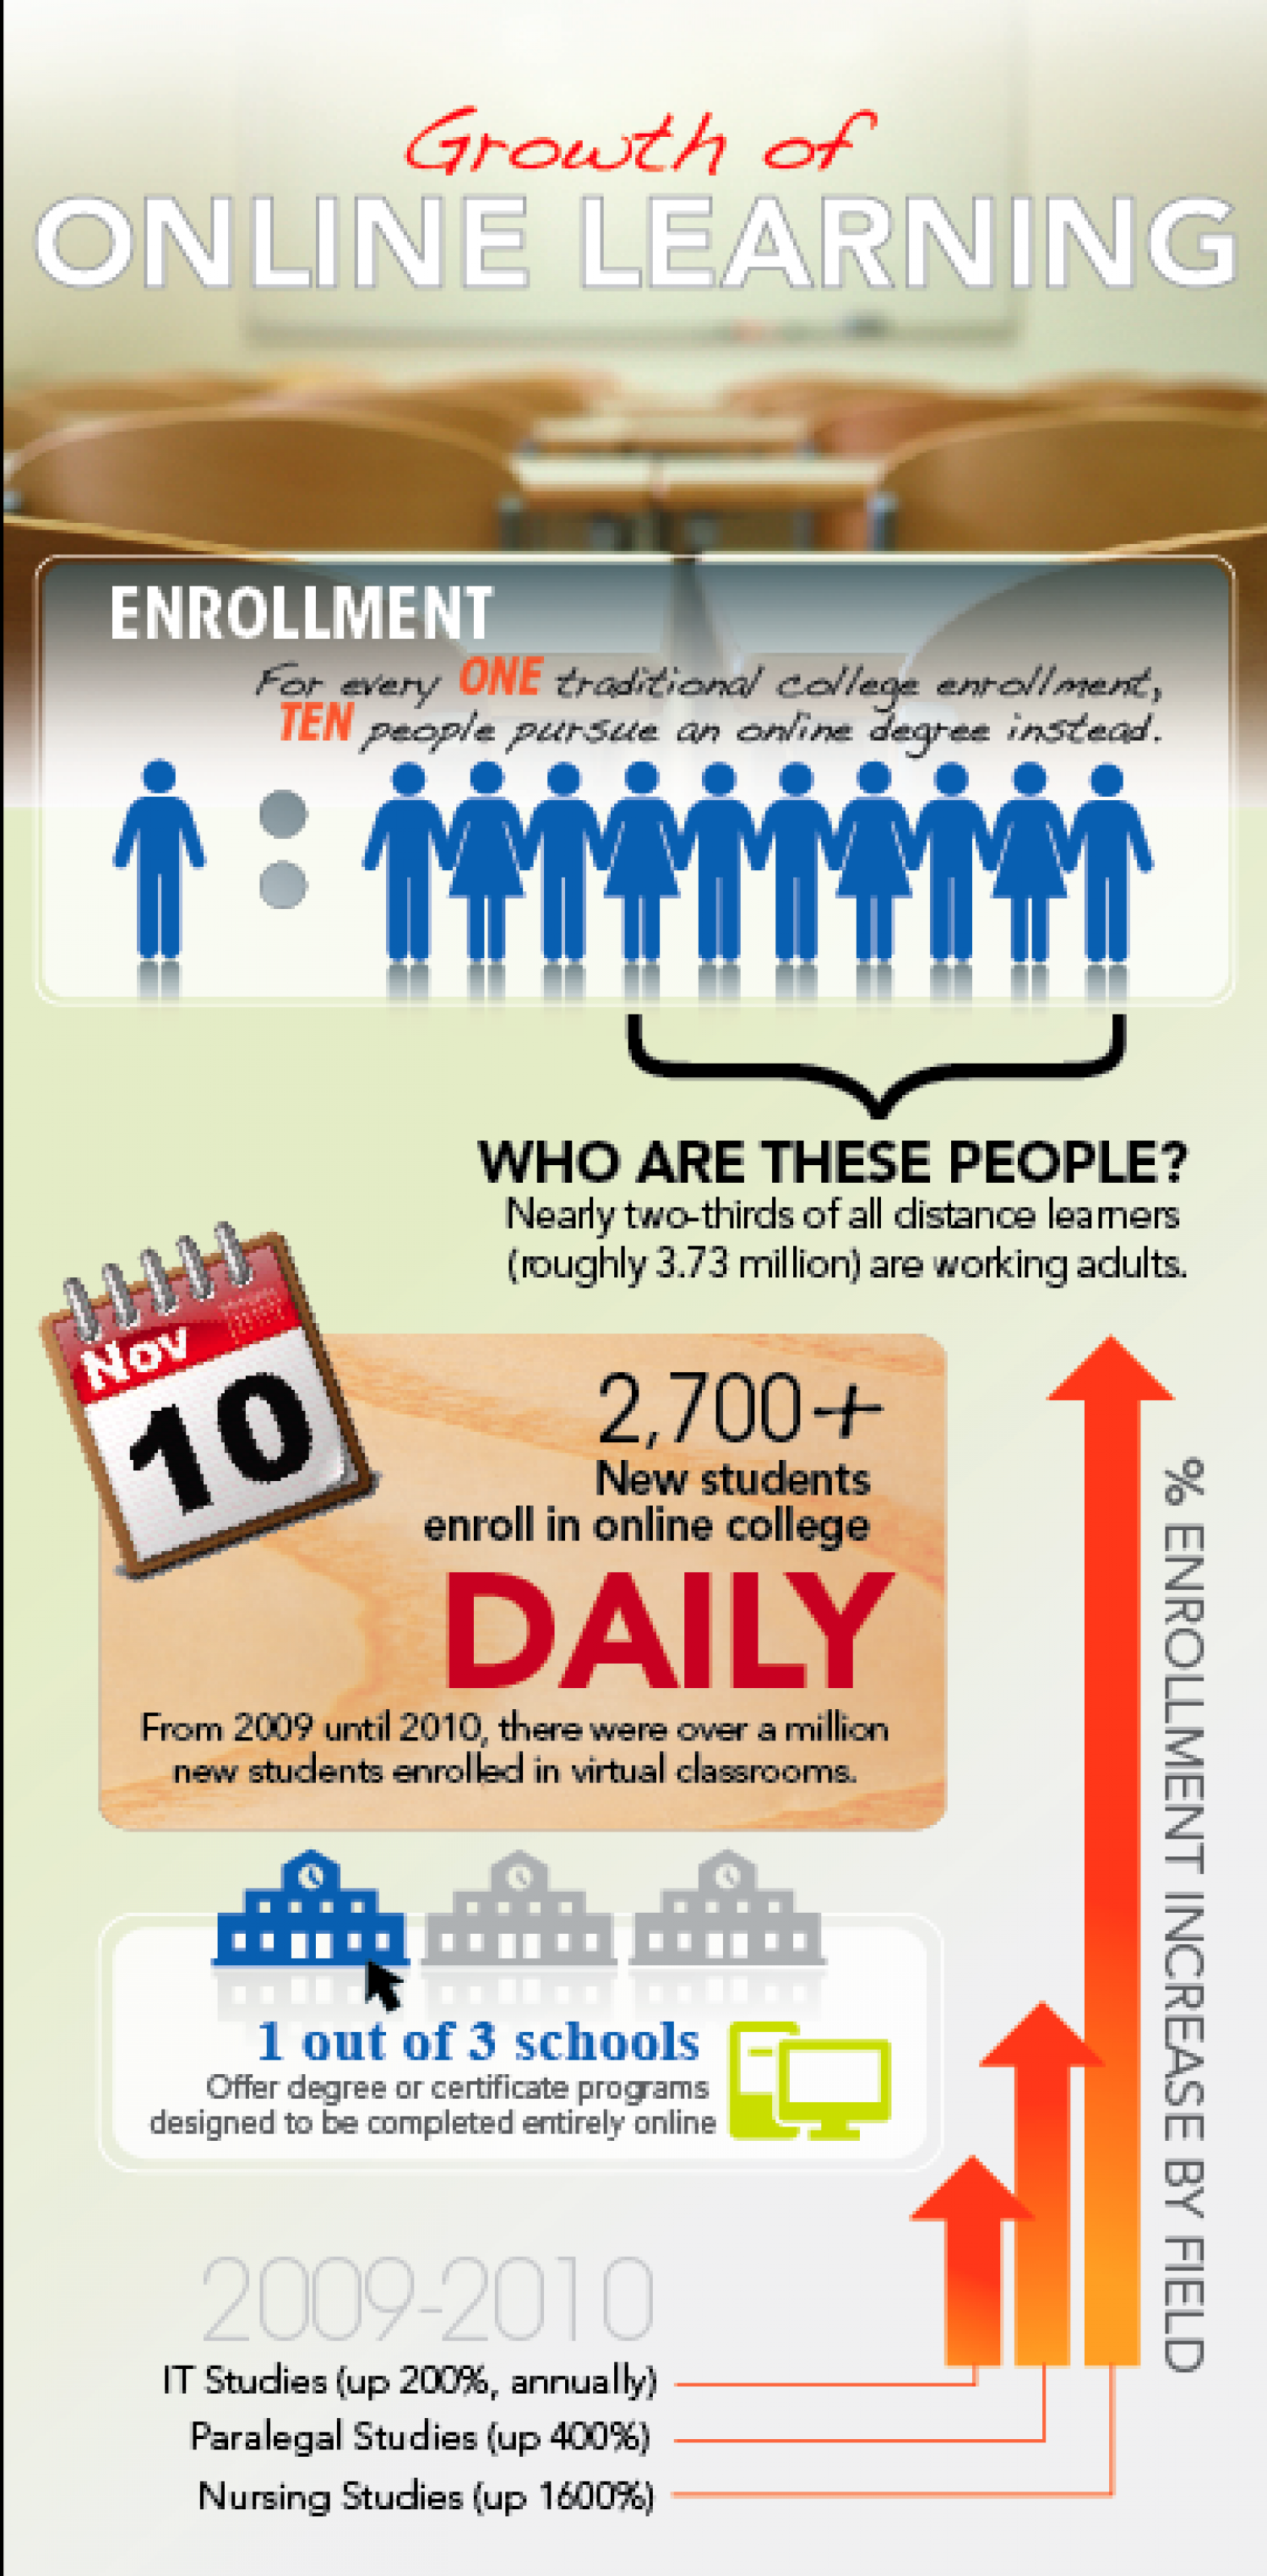 Growth of Online Learning Infographic